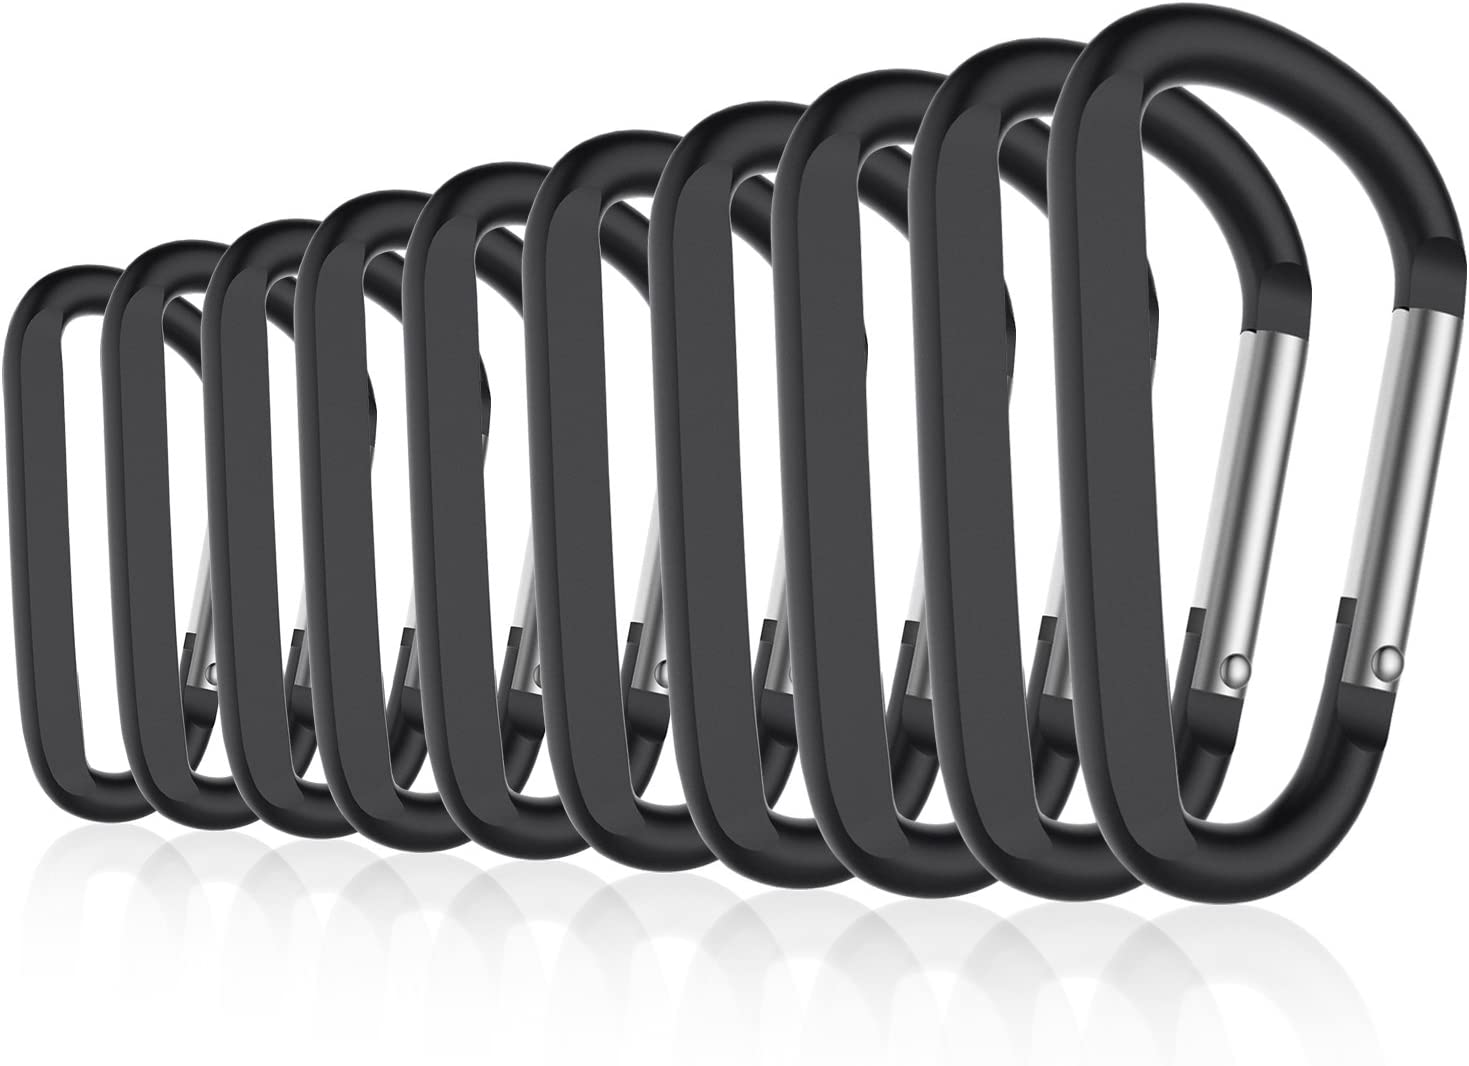 Michael Josh 8PCS 3 Carabiner Caribeaners Carabeeners Carabeaner Hook Clips with 8PCS Keyrings Not for Climbing